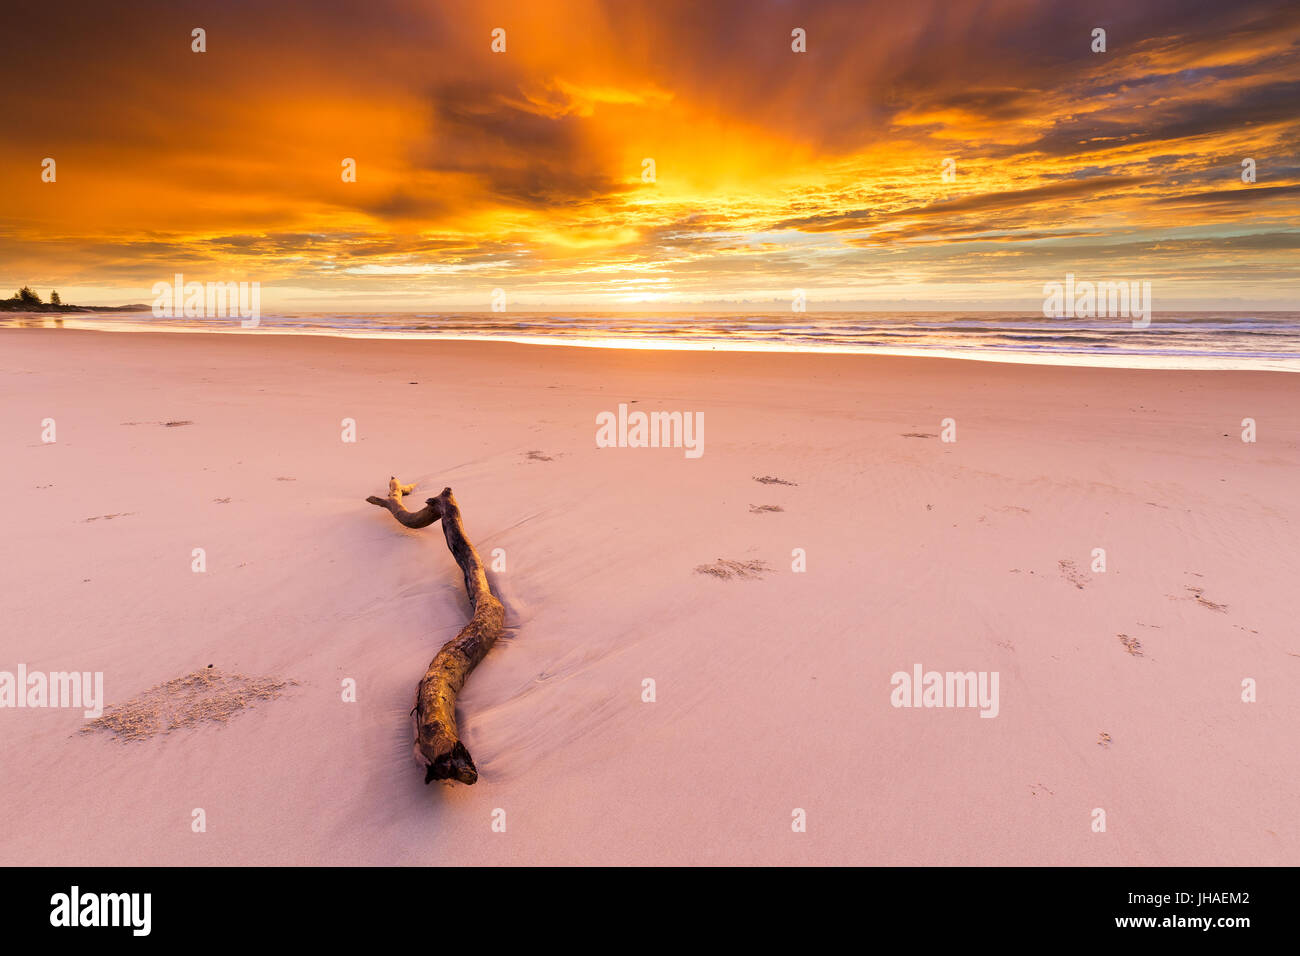 A driftwood log lies on the beach under an amazingly beautiful and intense golden sunrise in Australia. - Stock Image